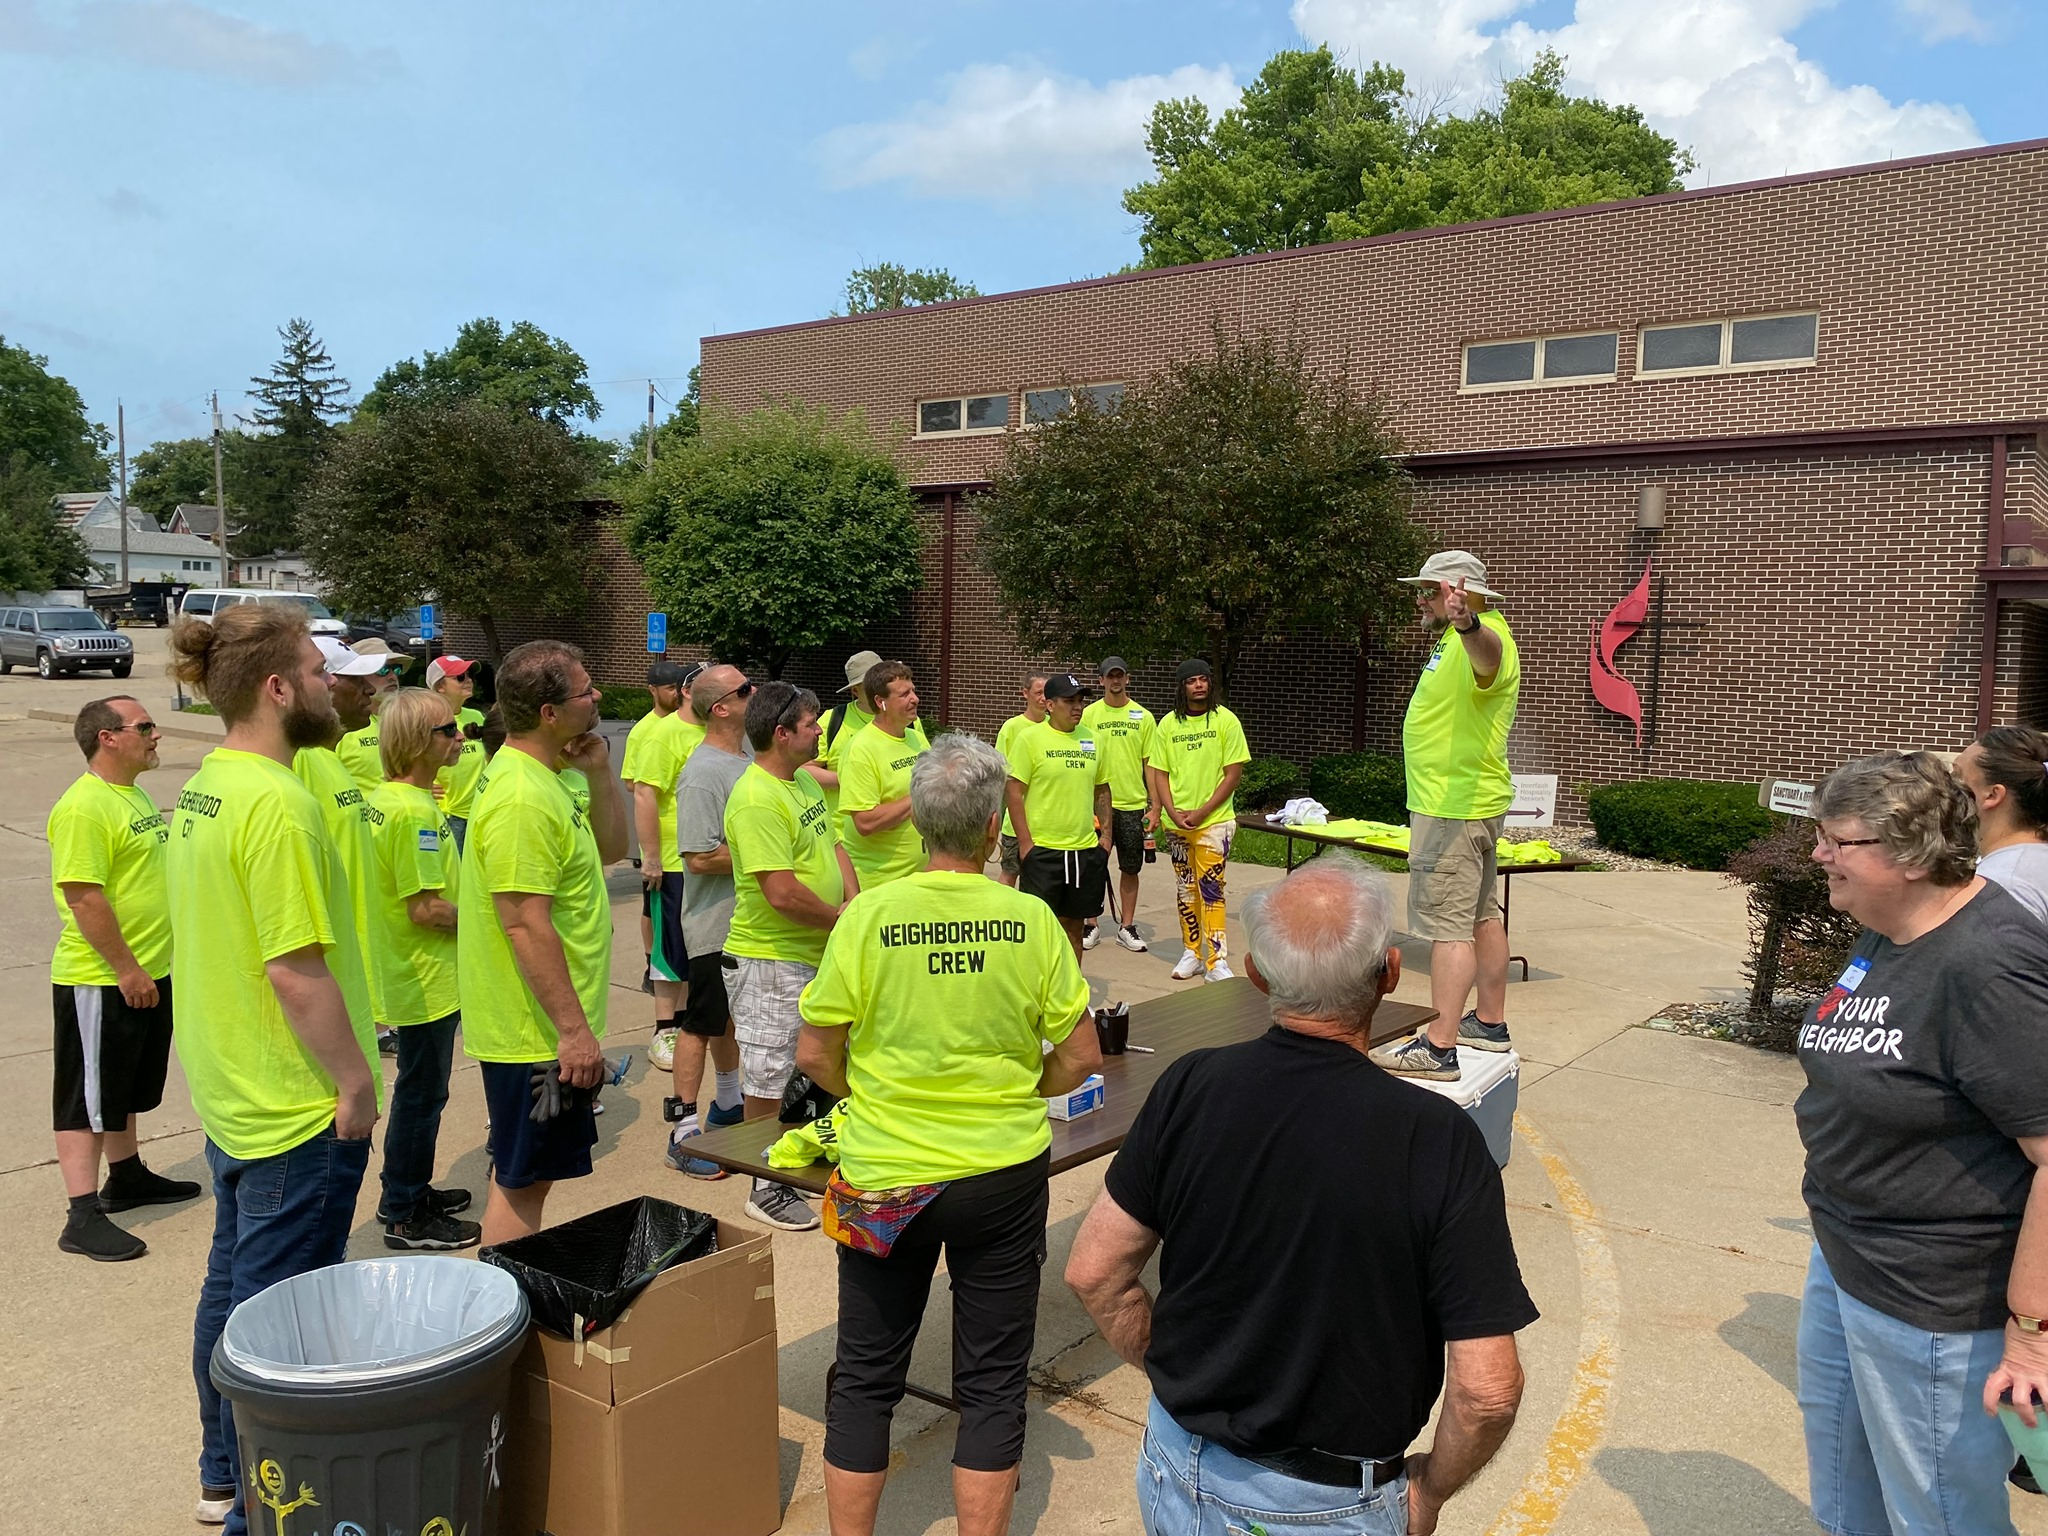 Goshen church gives back to neighborhood through clean-up, barbecue event